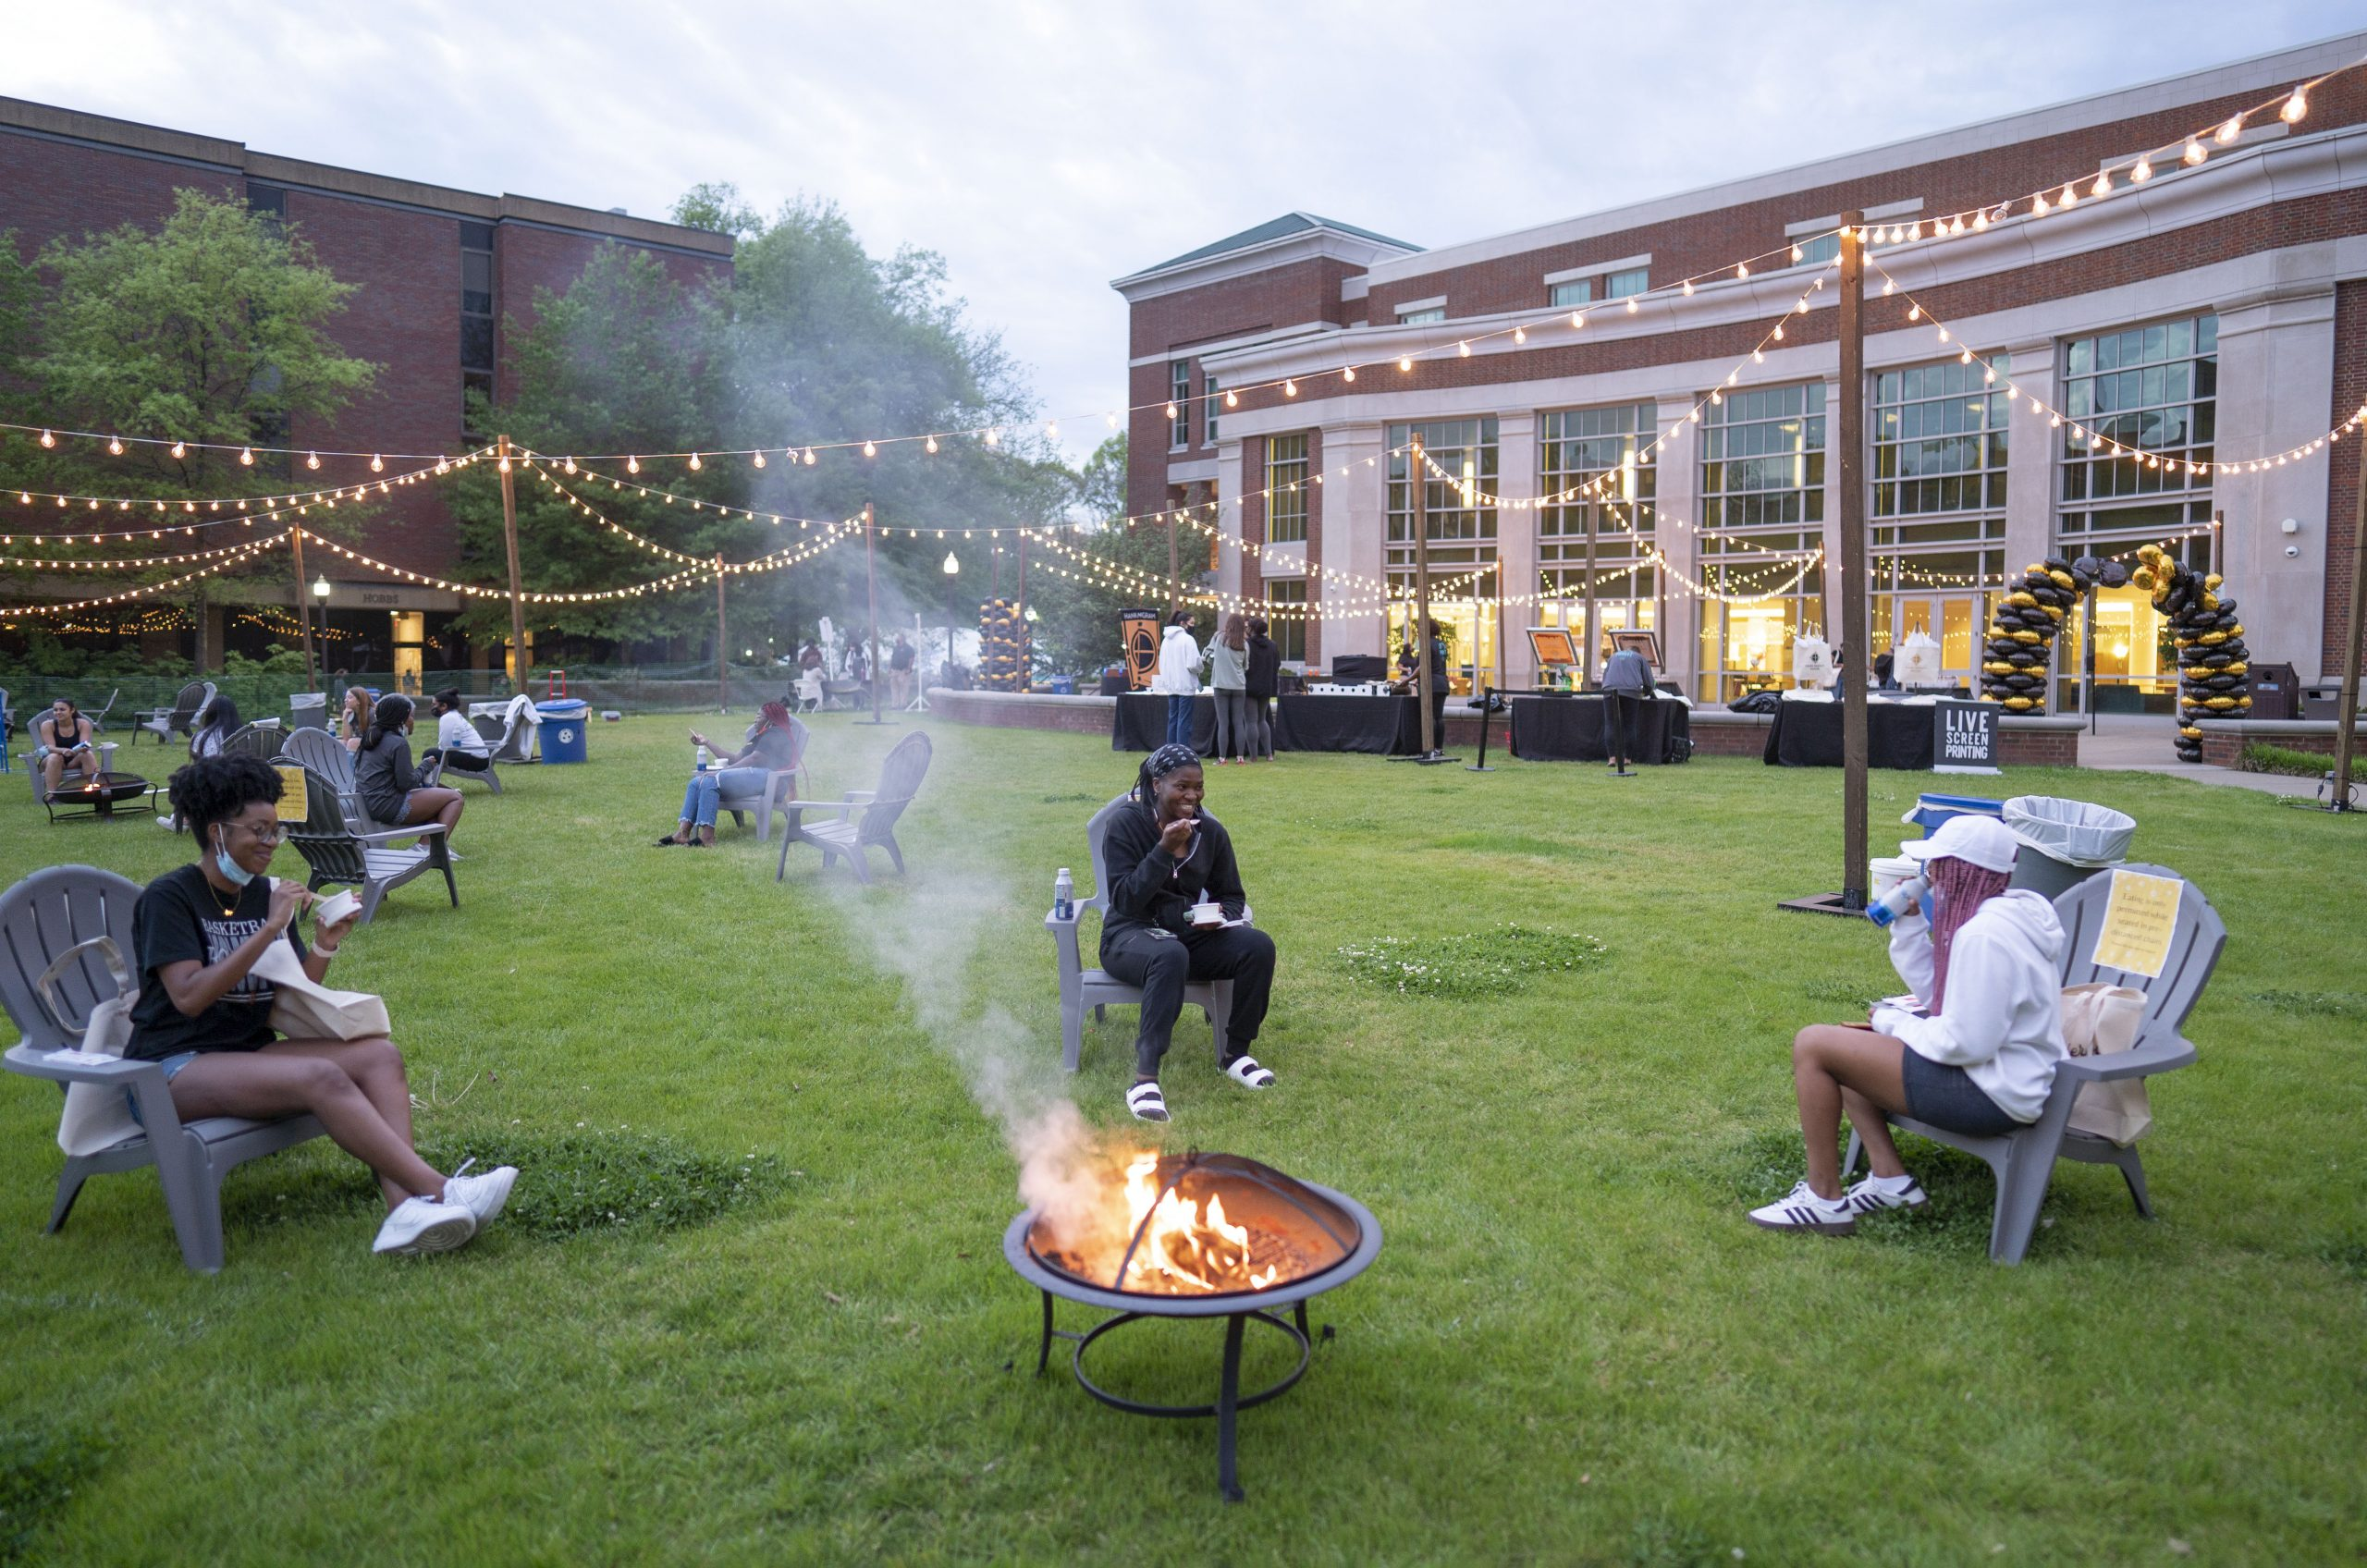 students gathered around a fire pit on The Commons